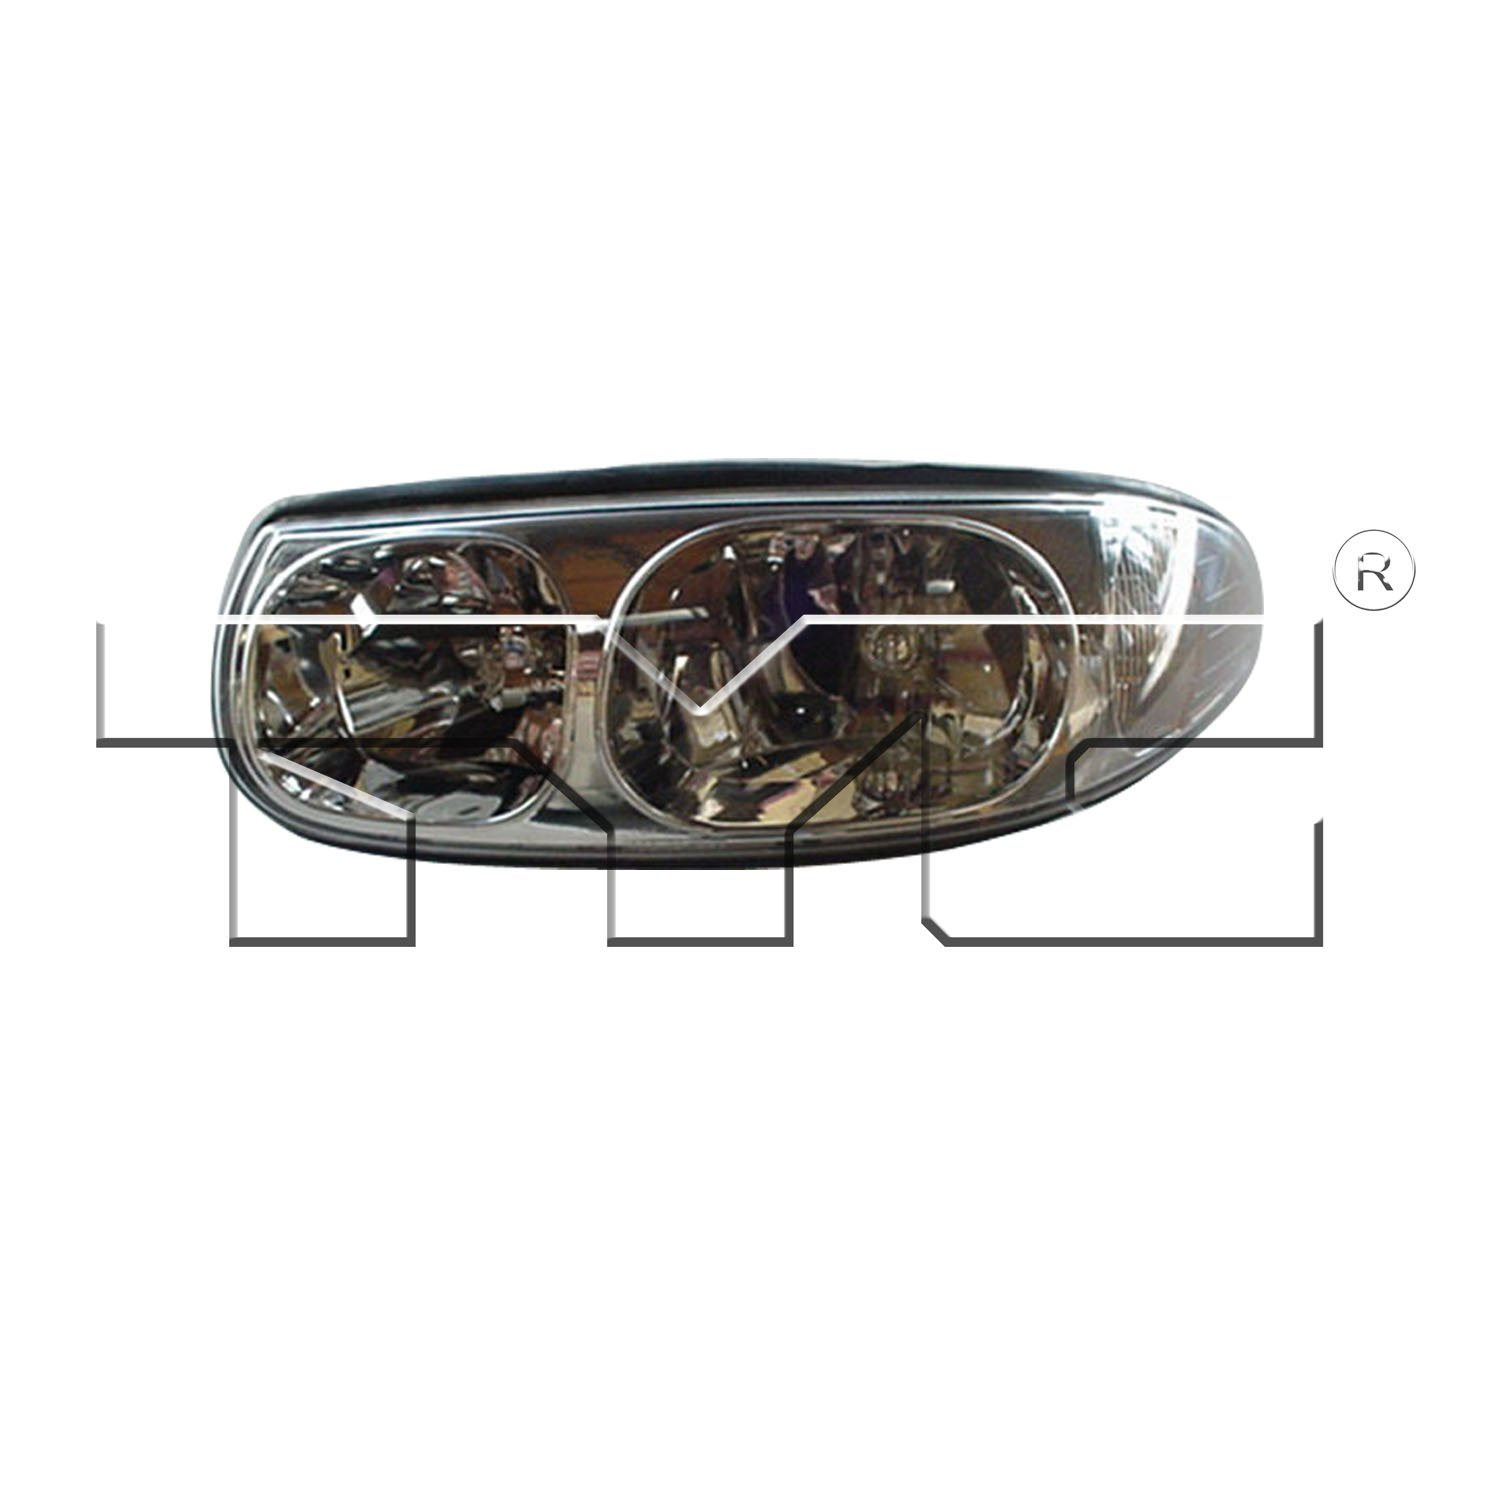 hight resolution of 2003 buick lesabre headlight assembly ty 20 5874 90 1